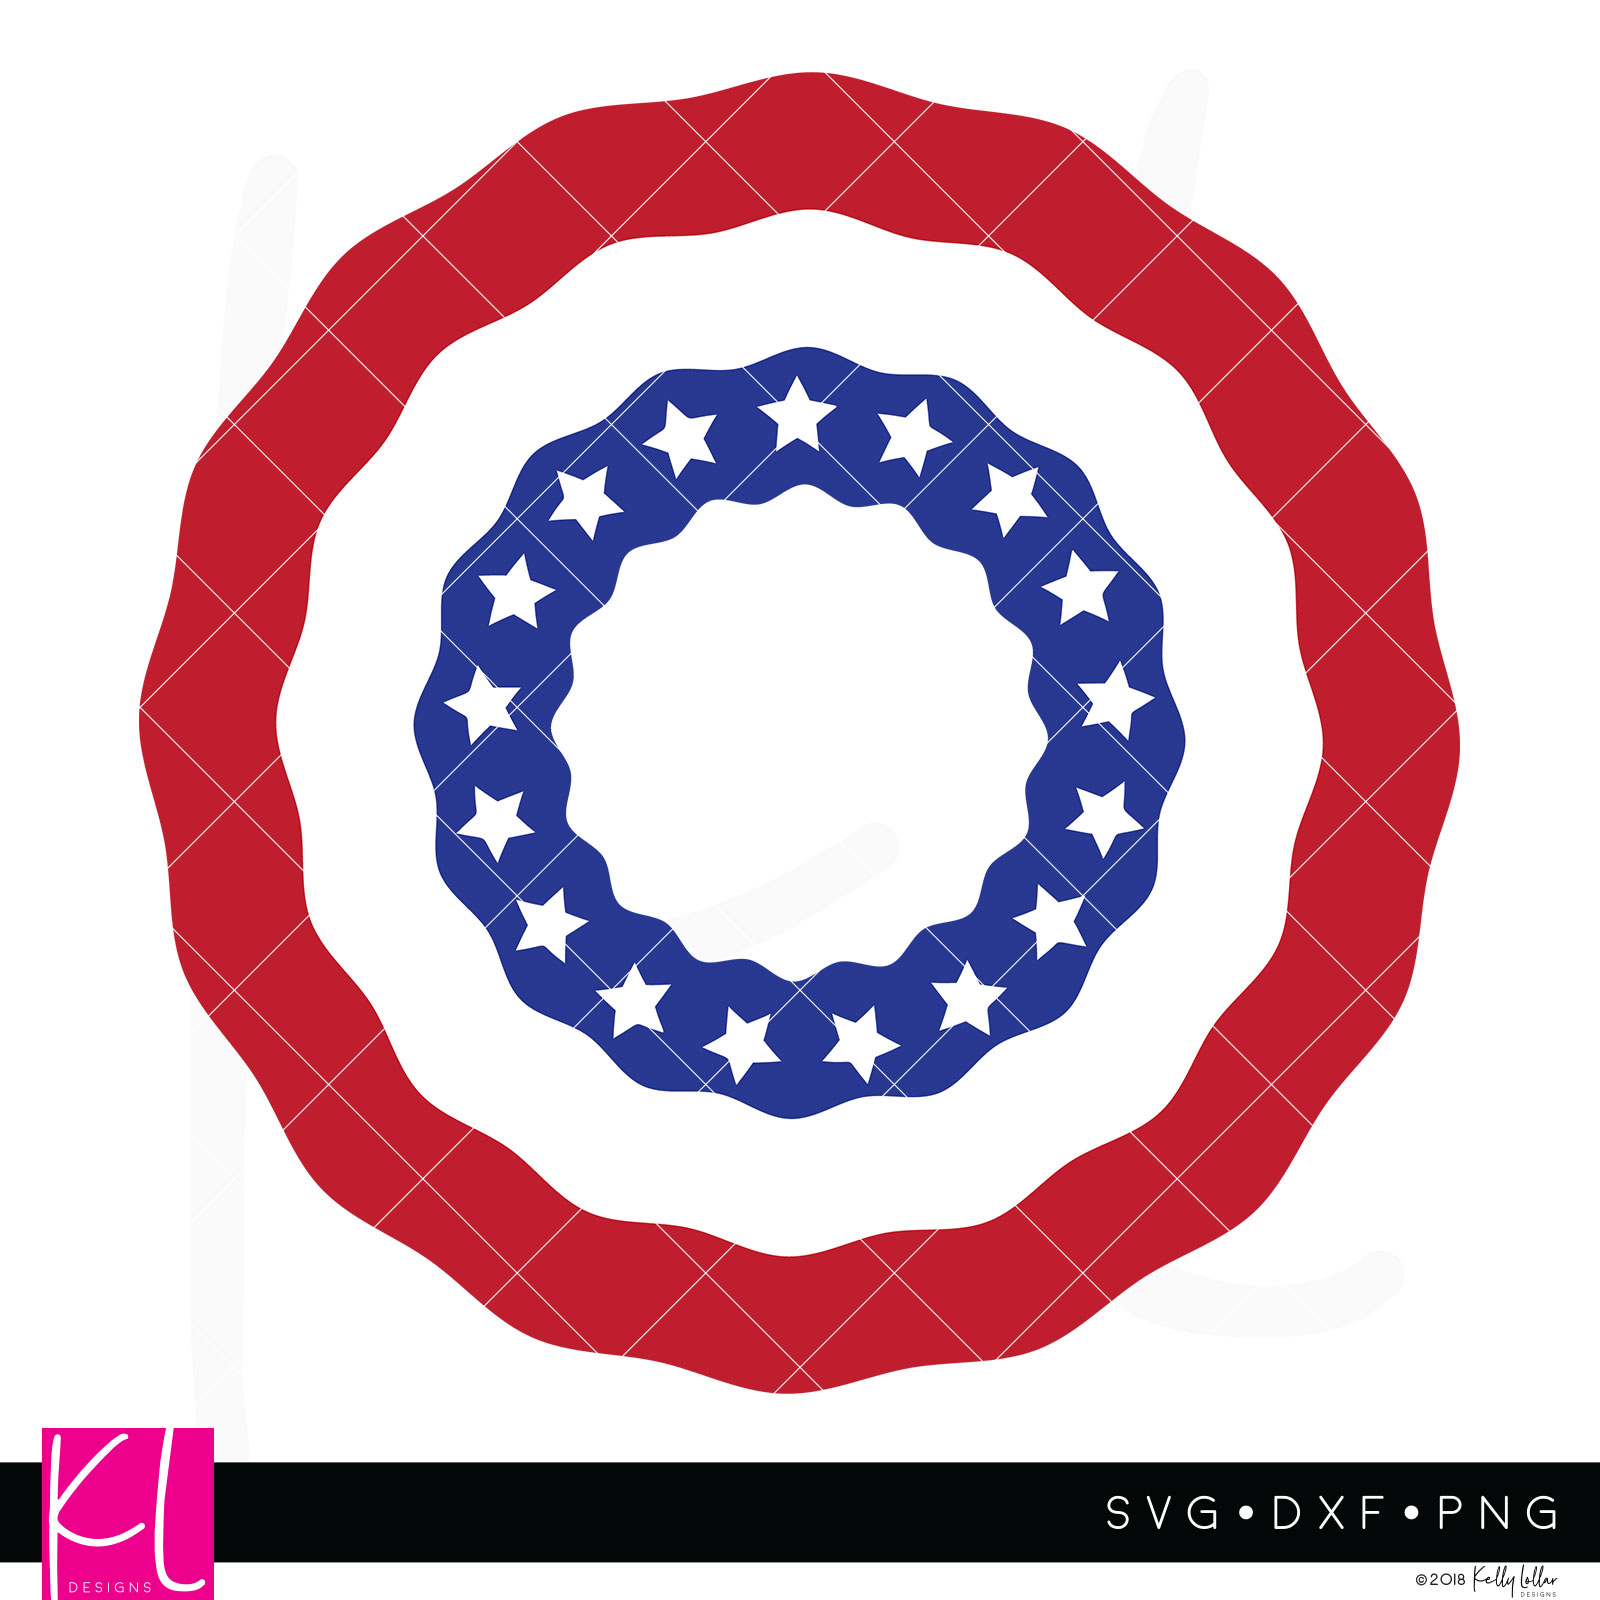 American flag bunting clipart svg library stock American Flag Bunting Monogram svg library stock